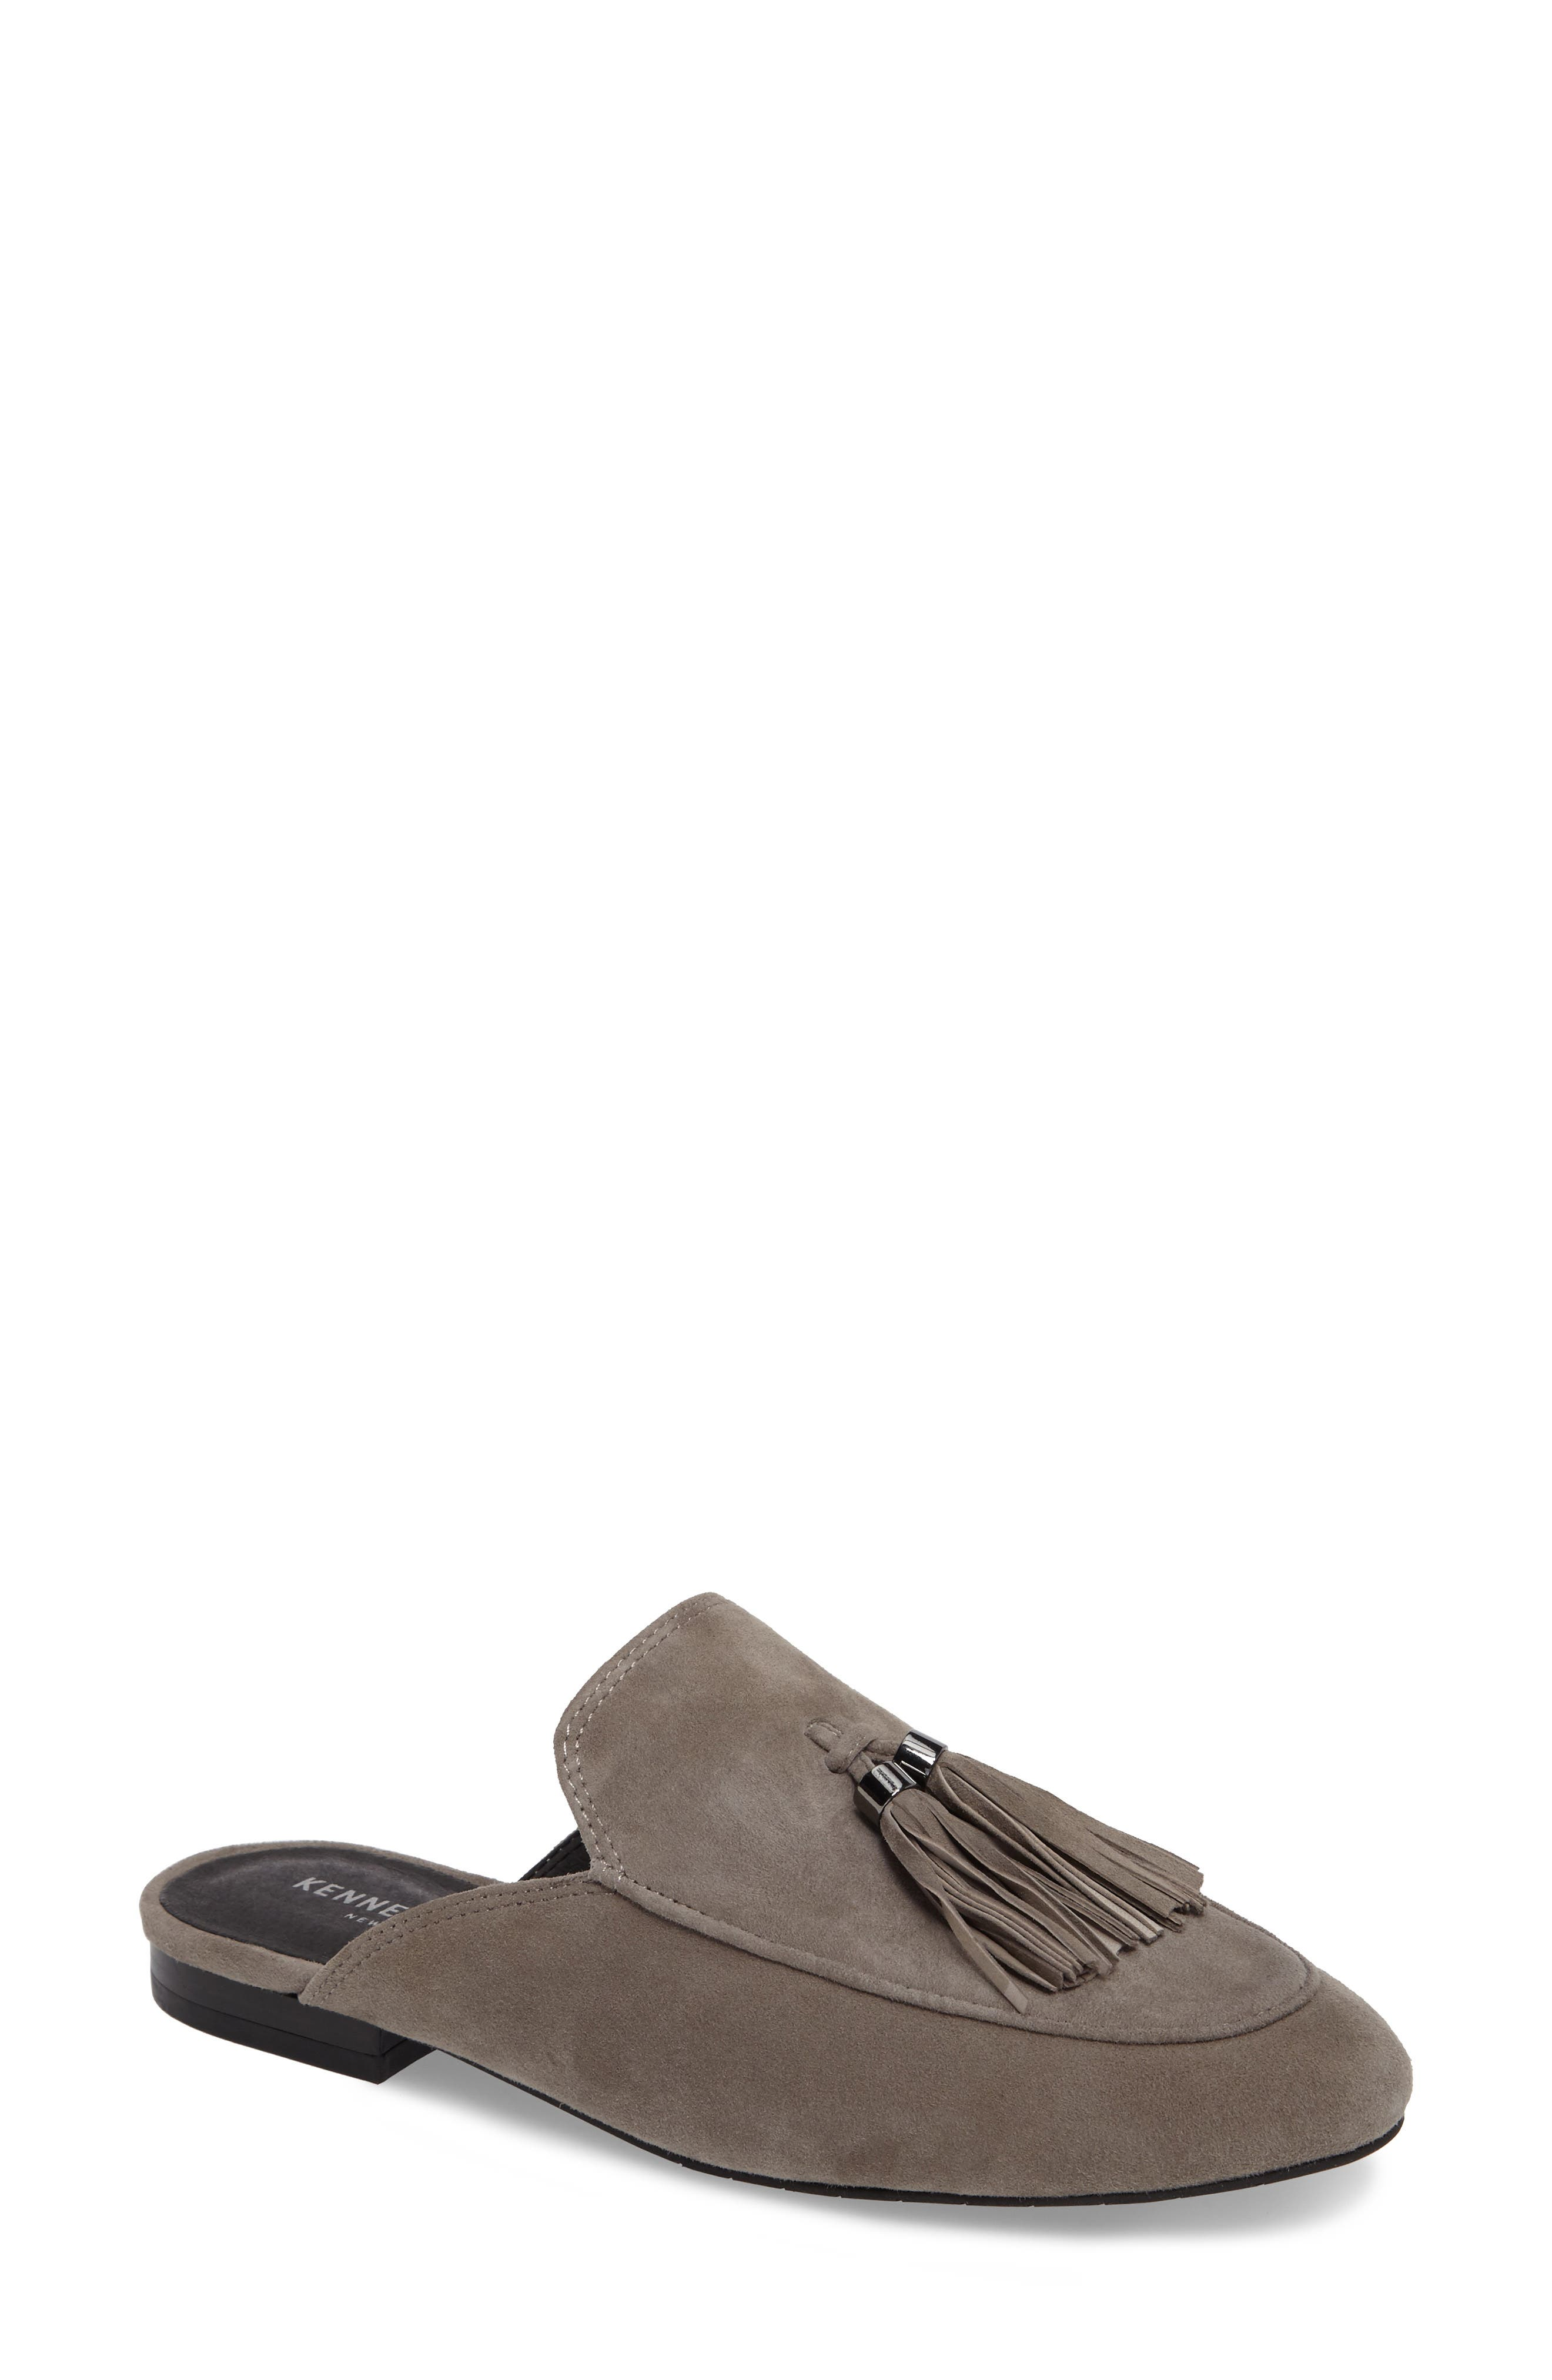 Whinnie Loafer Mule,                             Main thumbnail 1, color,                             090